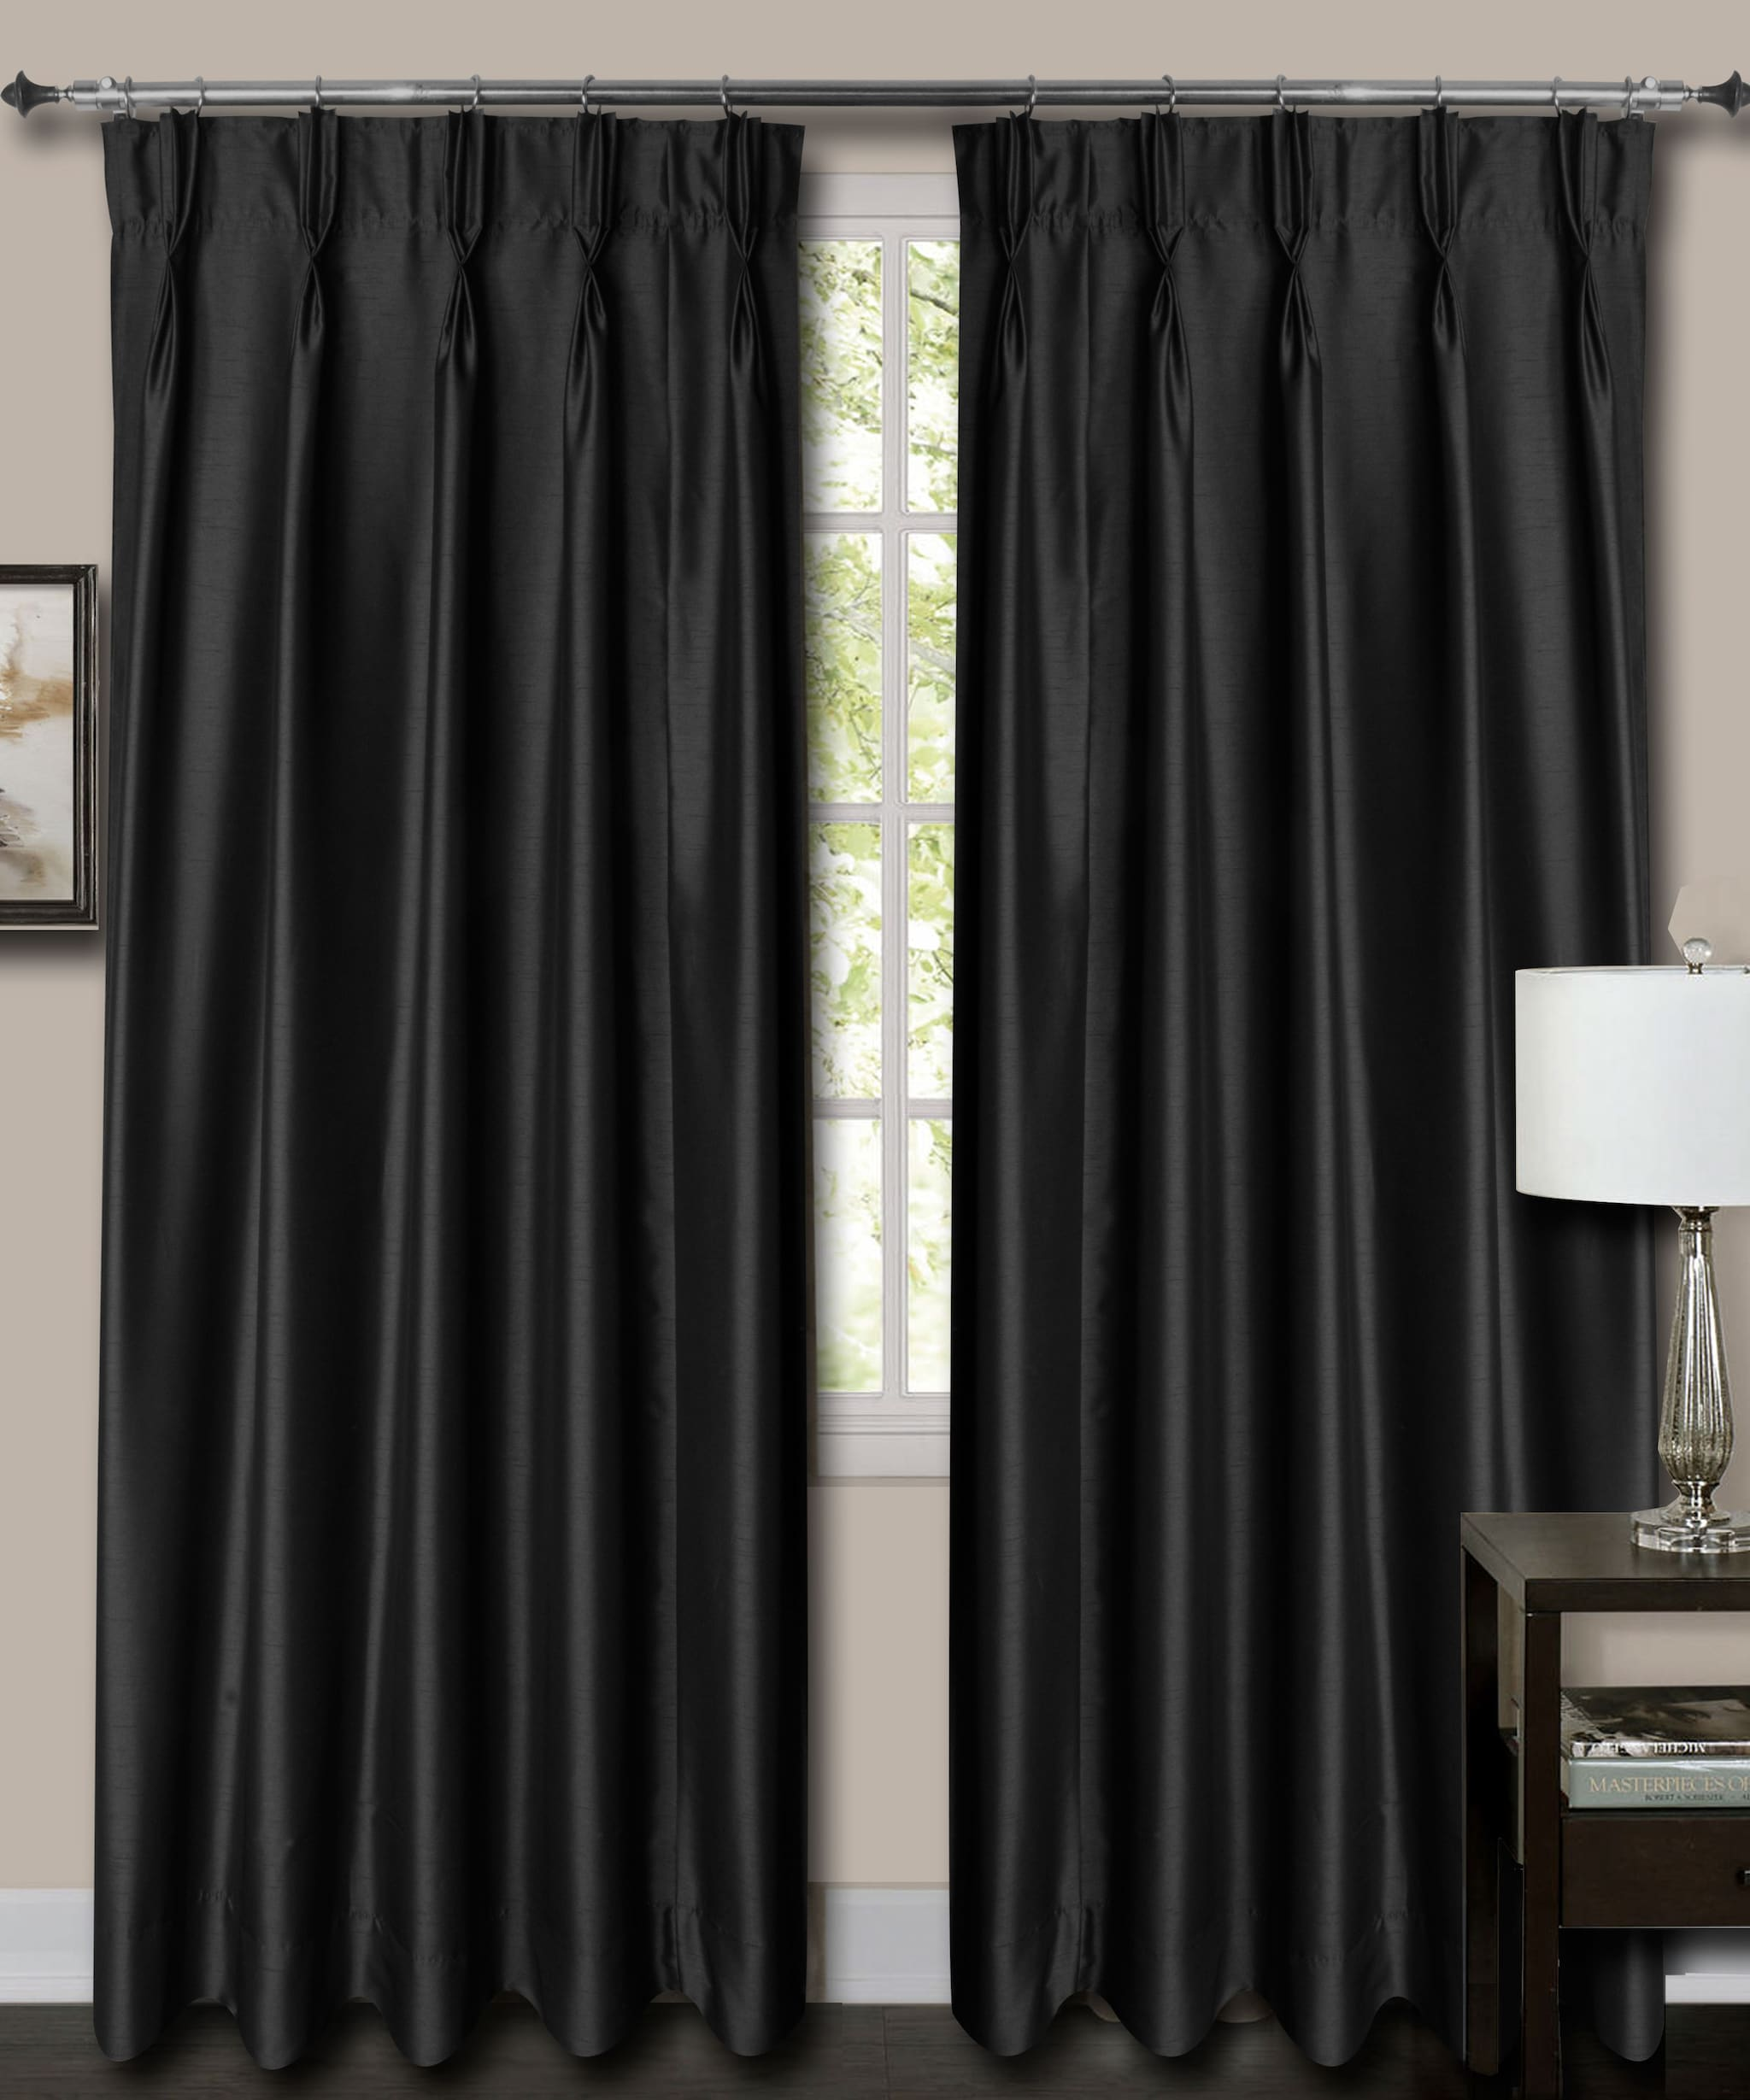 "French Pleat Top Black Faux Silk Dupioni Curtains. (52"" Wide,13 Feet Long,Without Lining)"